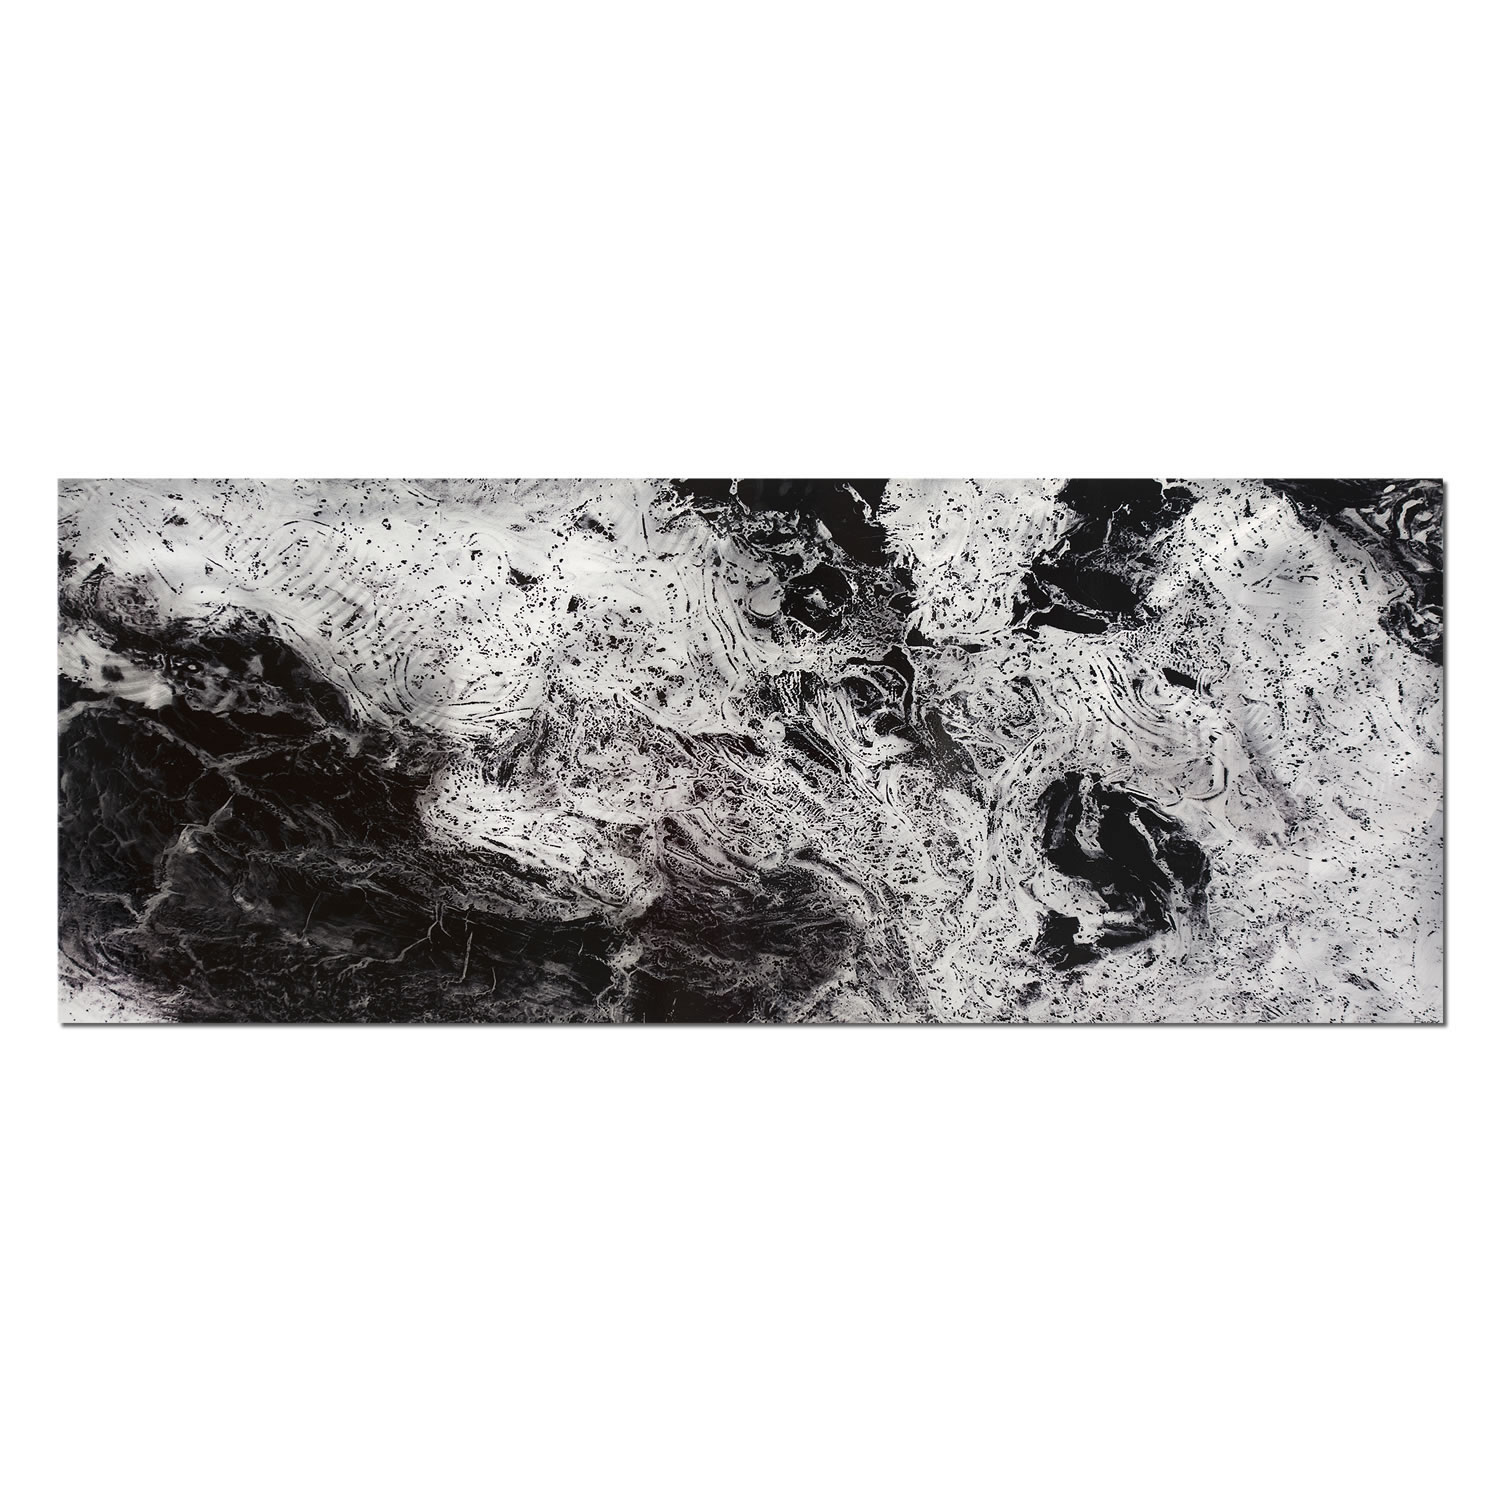 Storm Black & White - Swirling Black Abstract Art